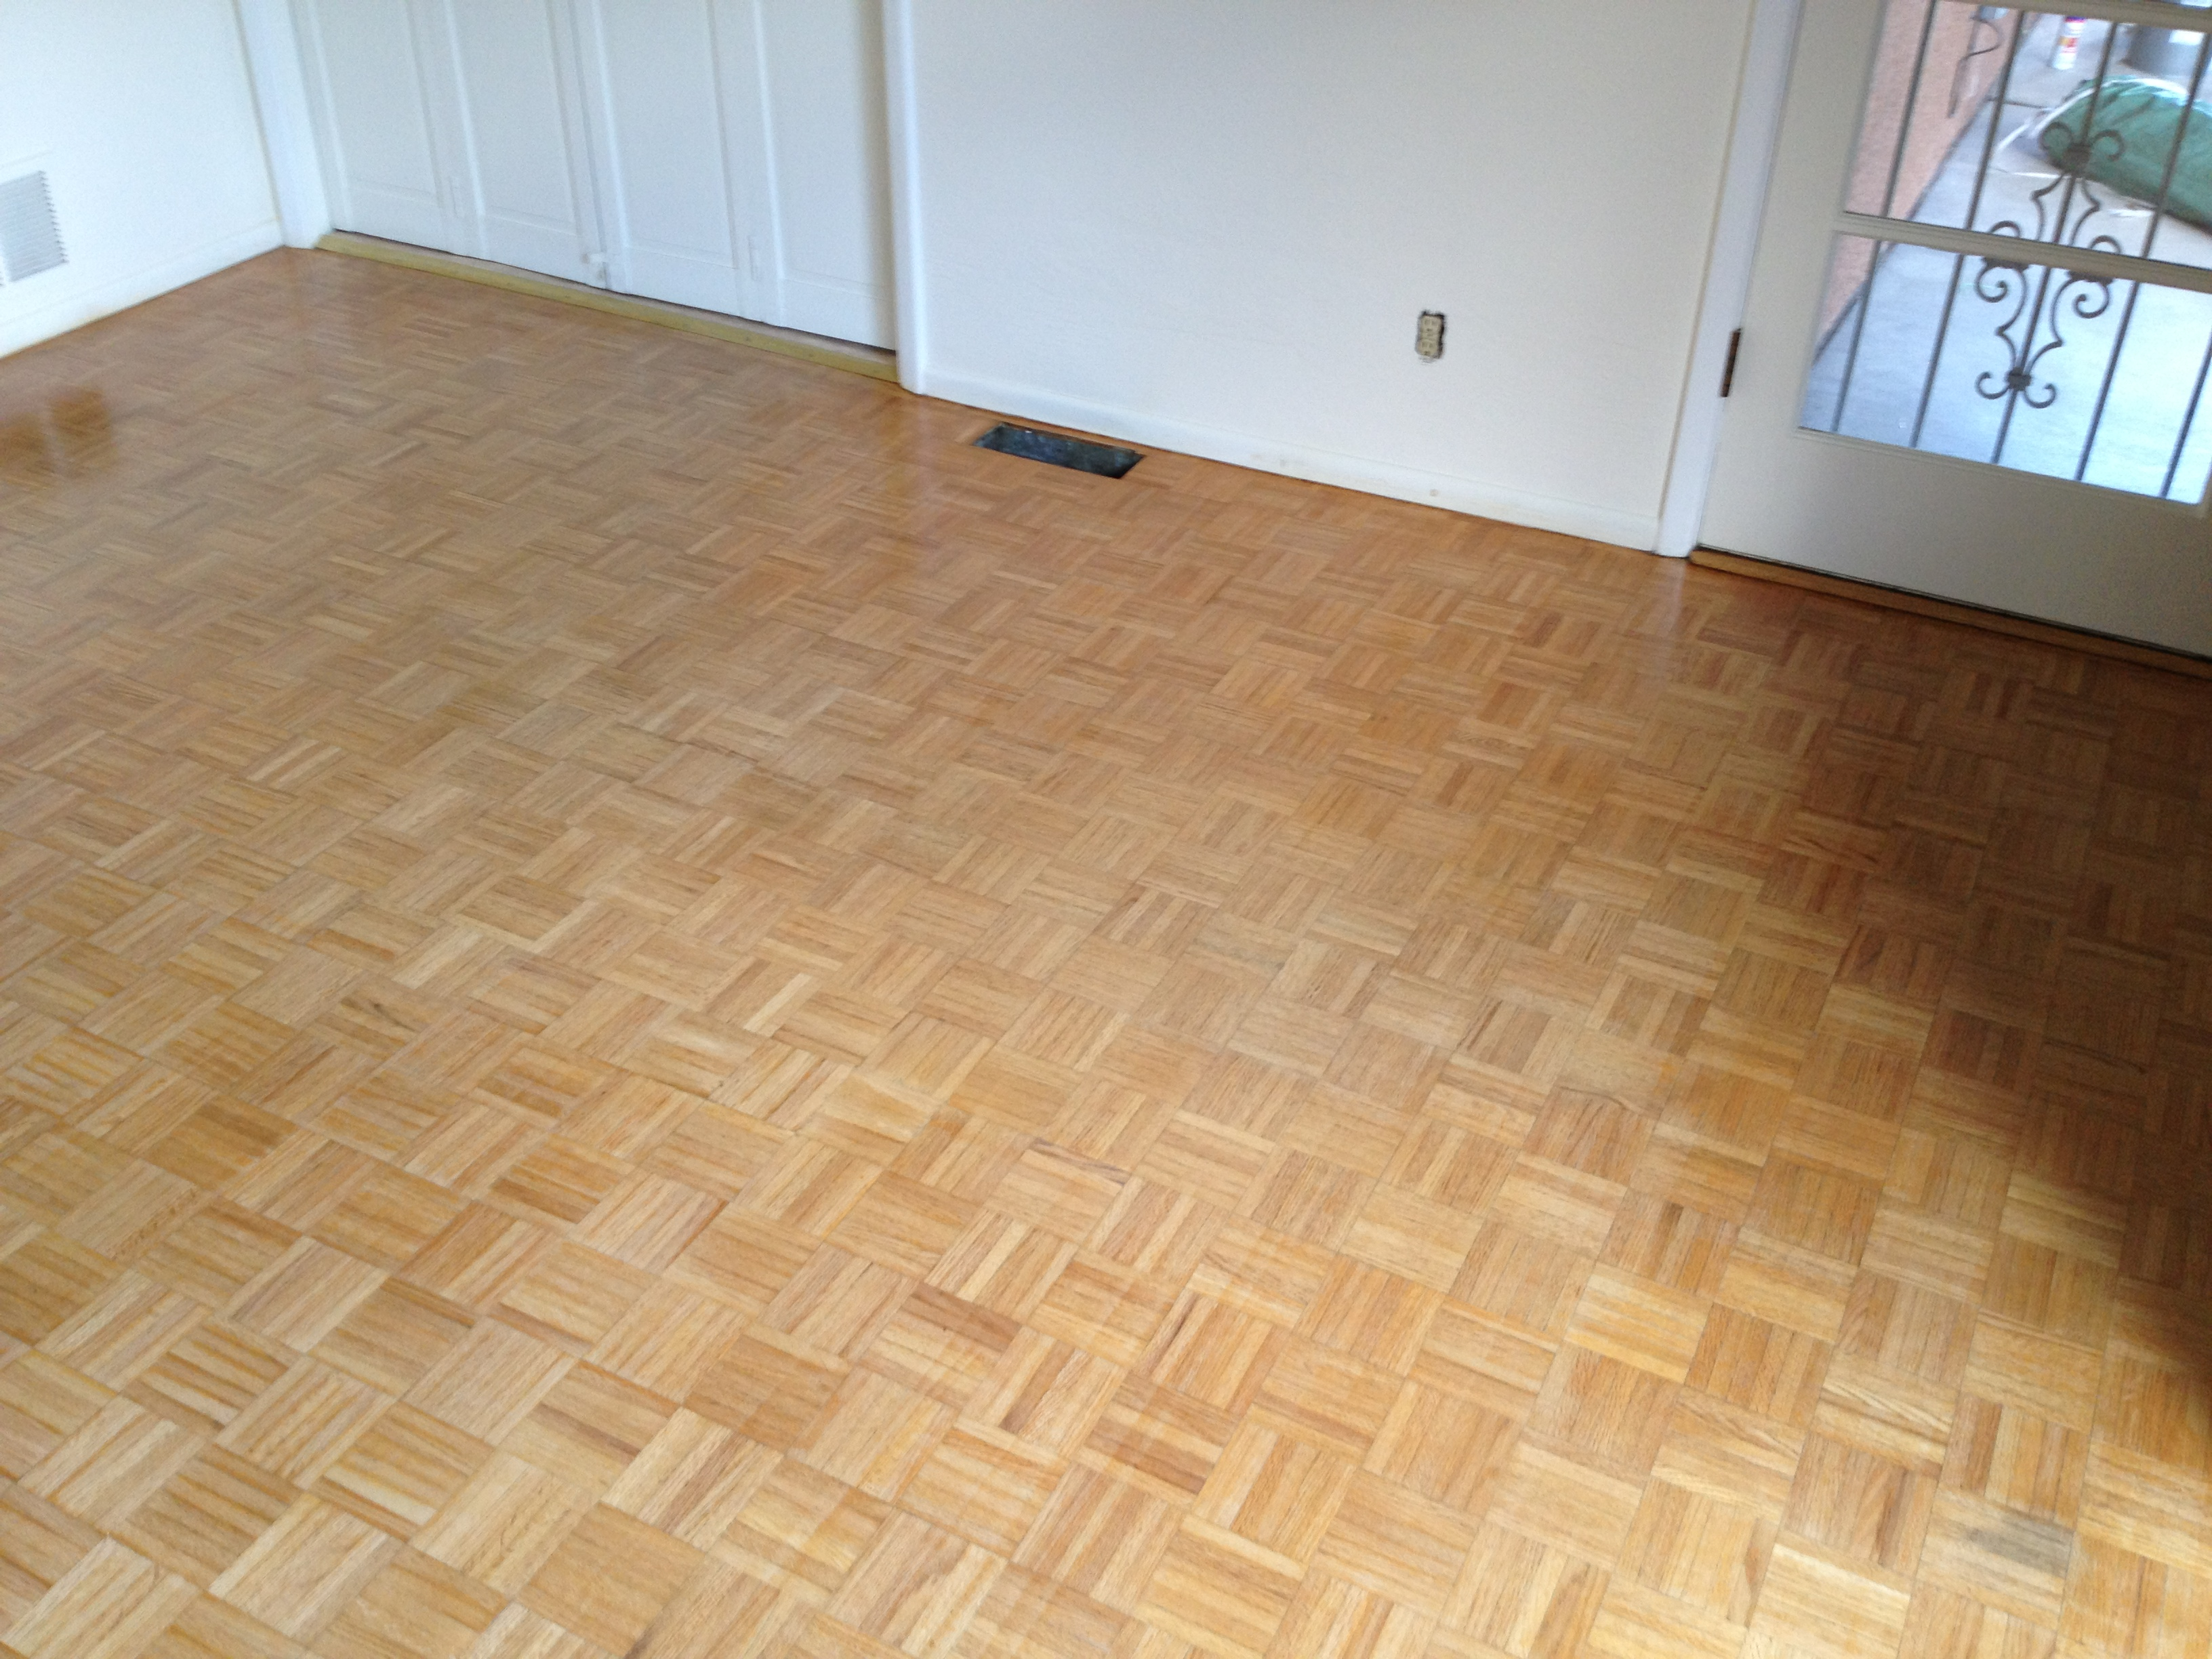 Refinish hardwood floors cost flooring ideas home for Resurfacing wood floors